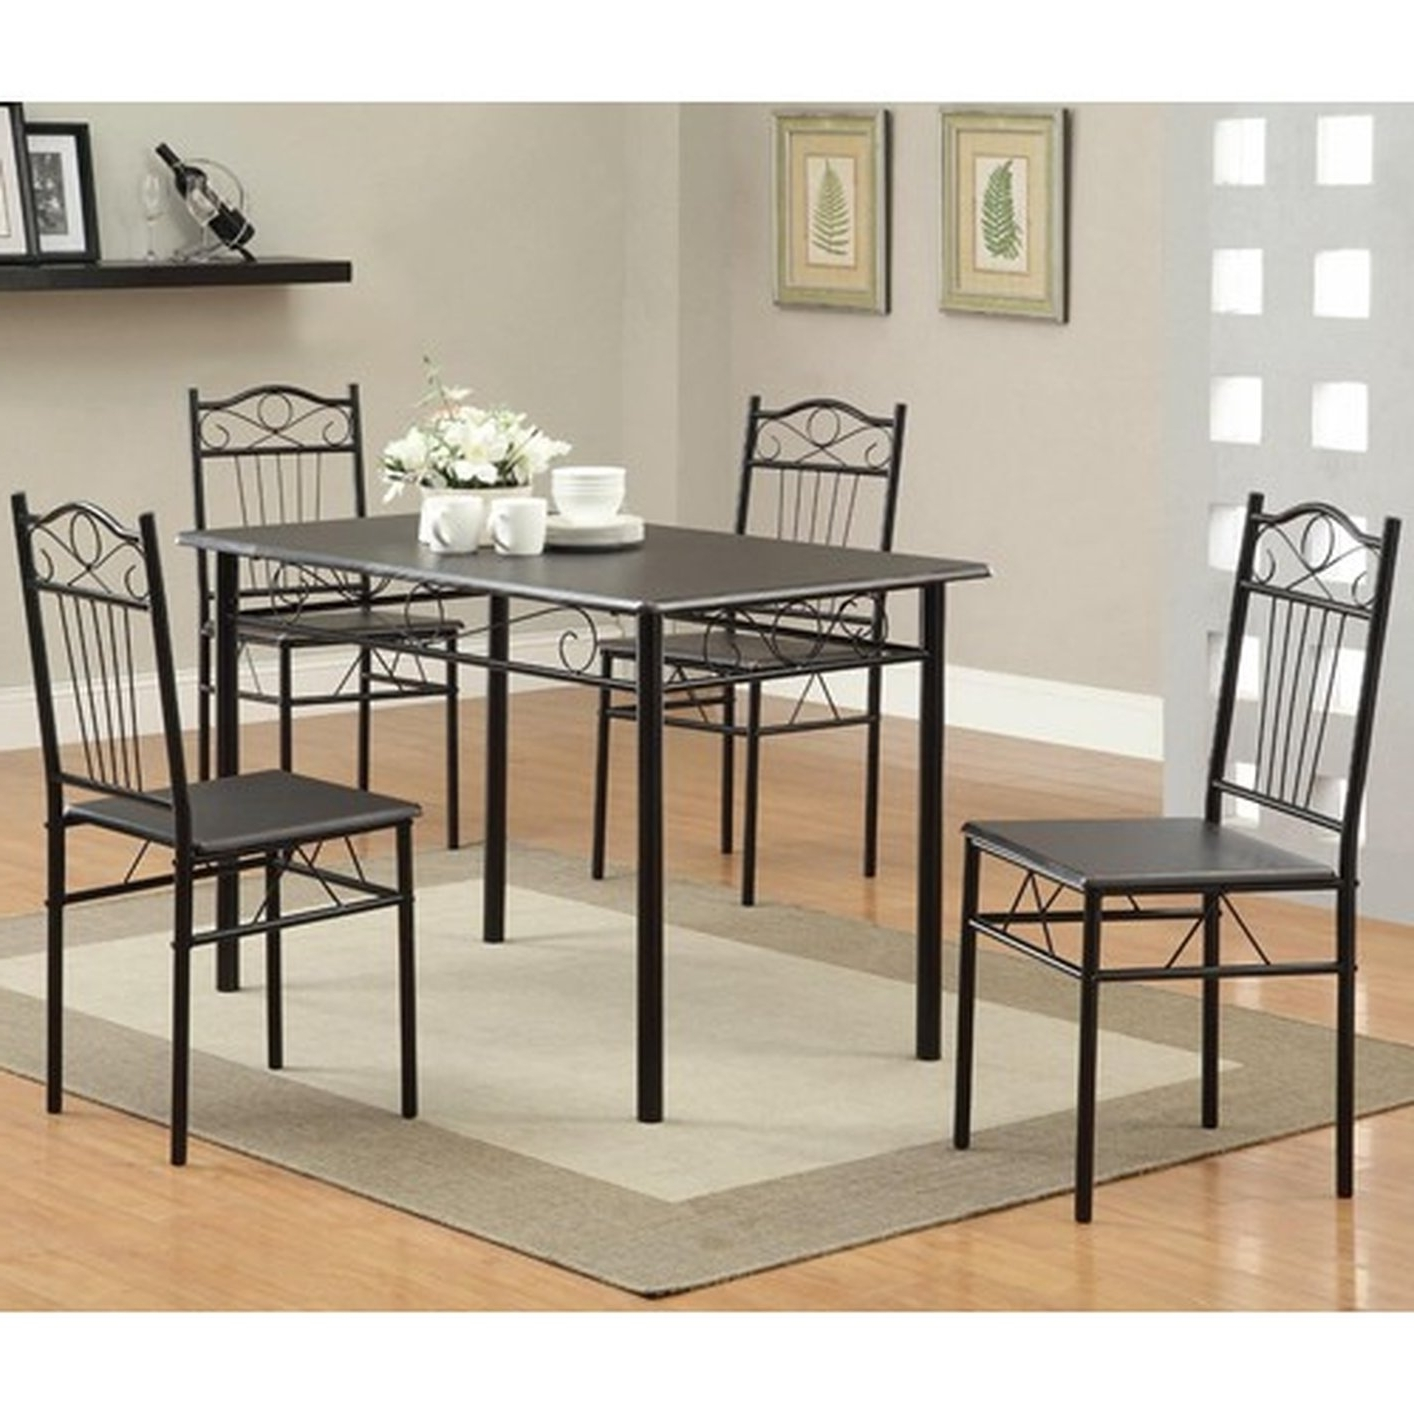 Dining Table Chair Sets Intended For Most Up To Date Black Metal Dining Table And Chair Set – Steal A Sofa Furniture (Gallery 13 of 25)